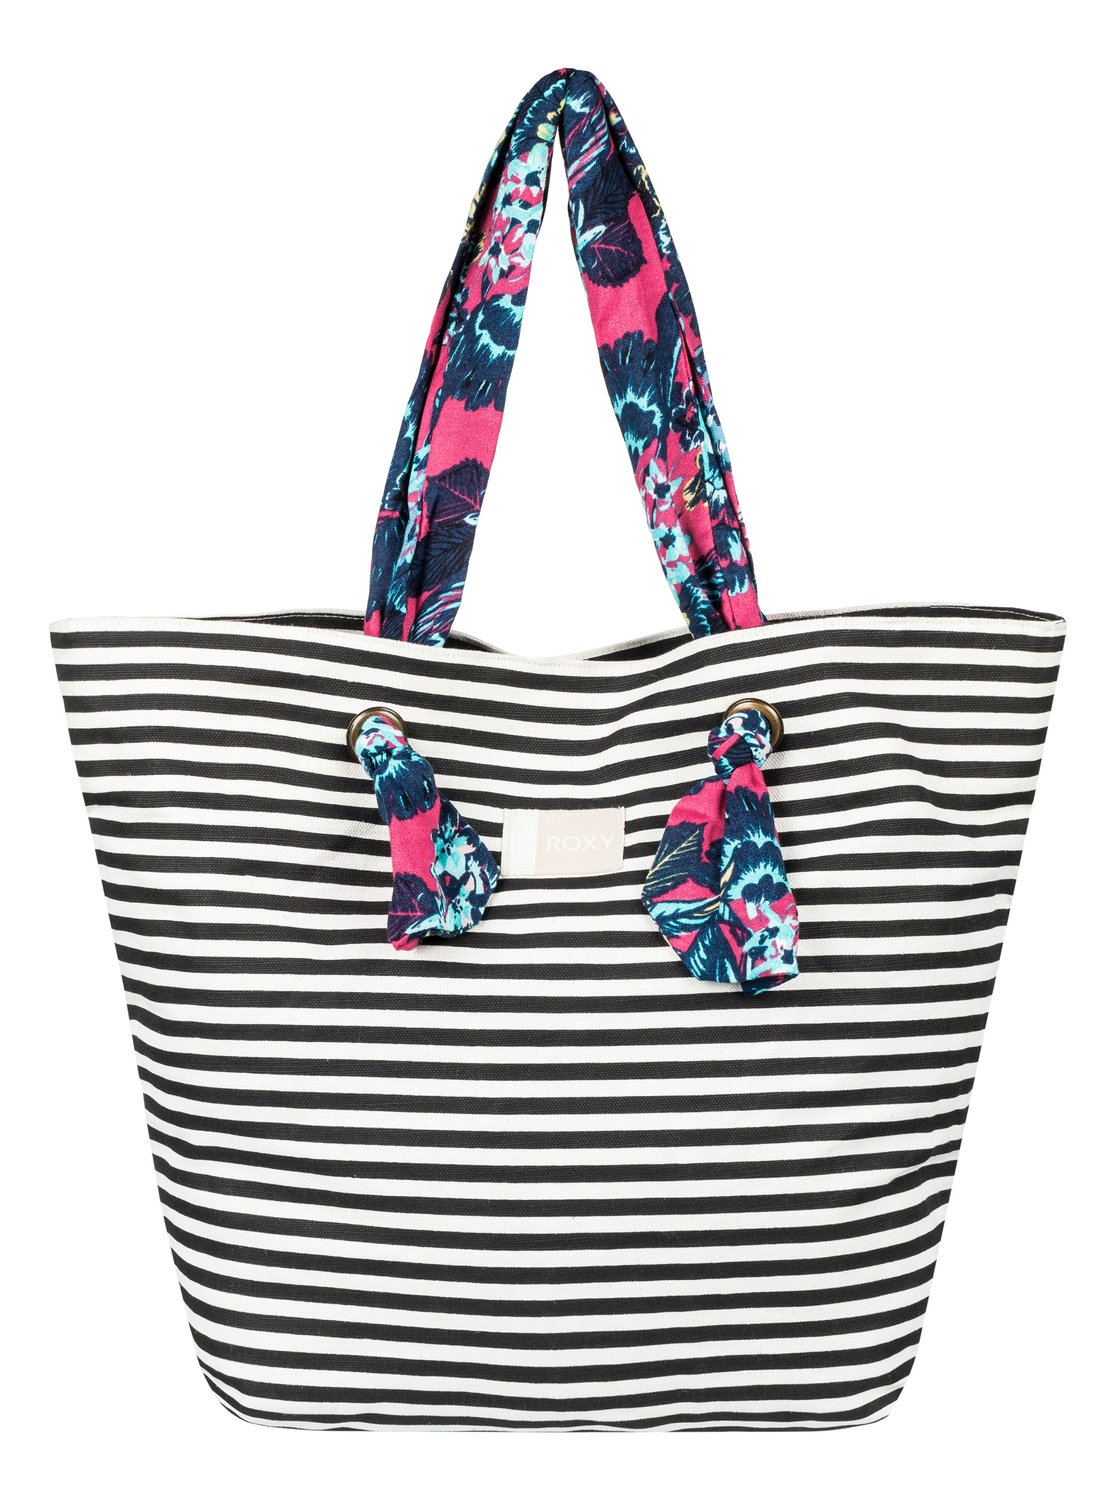 Act Together - Bolsa de Playa para Mujer Roxy